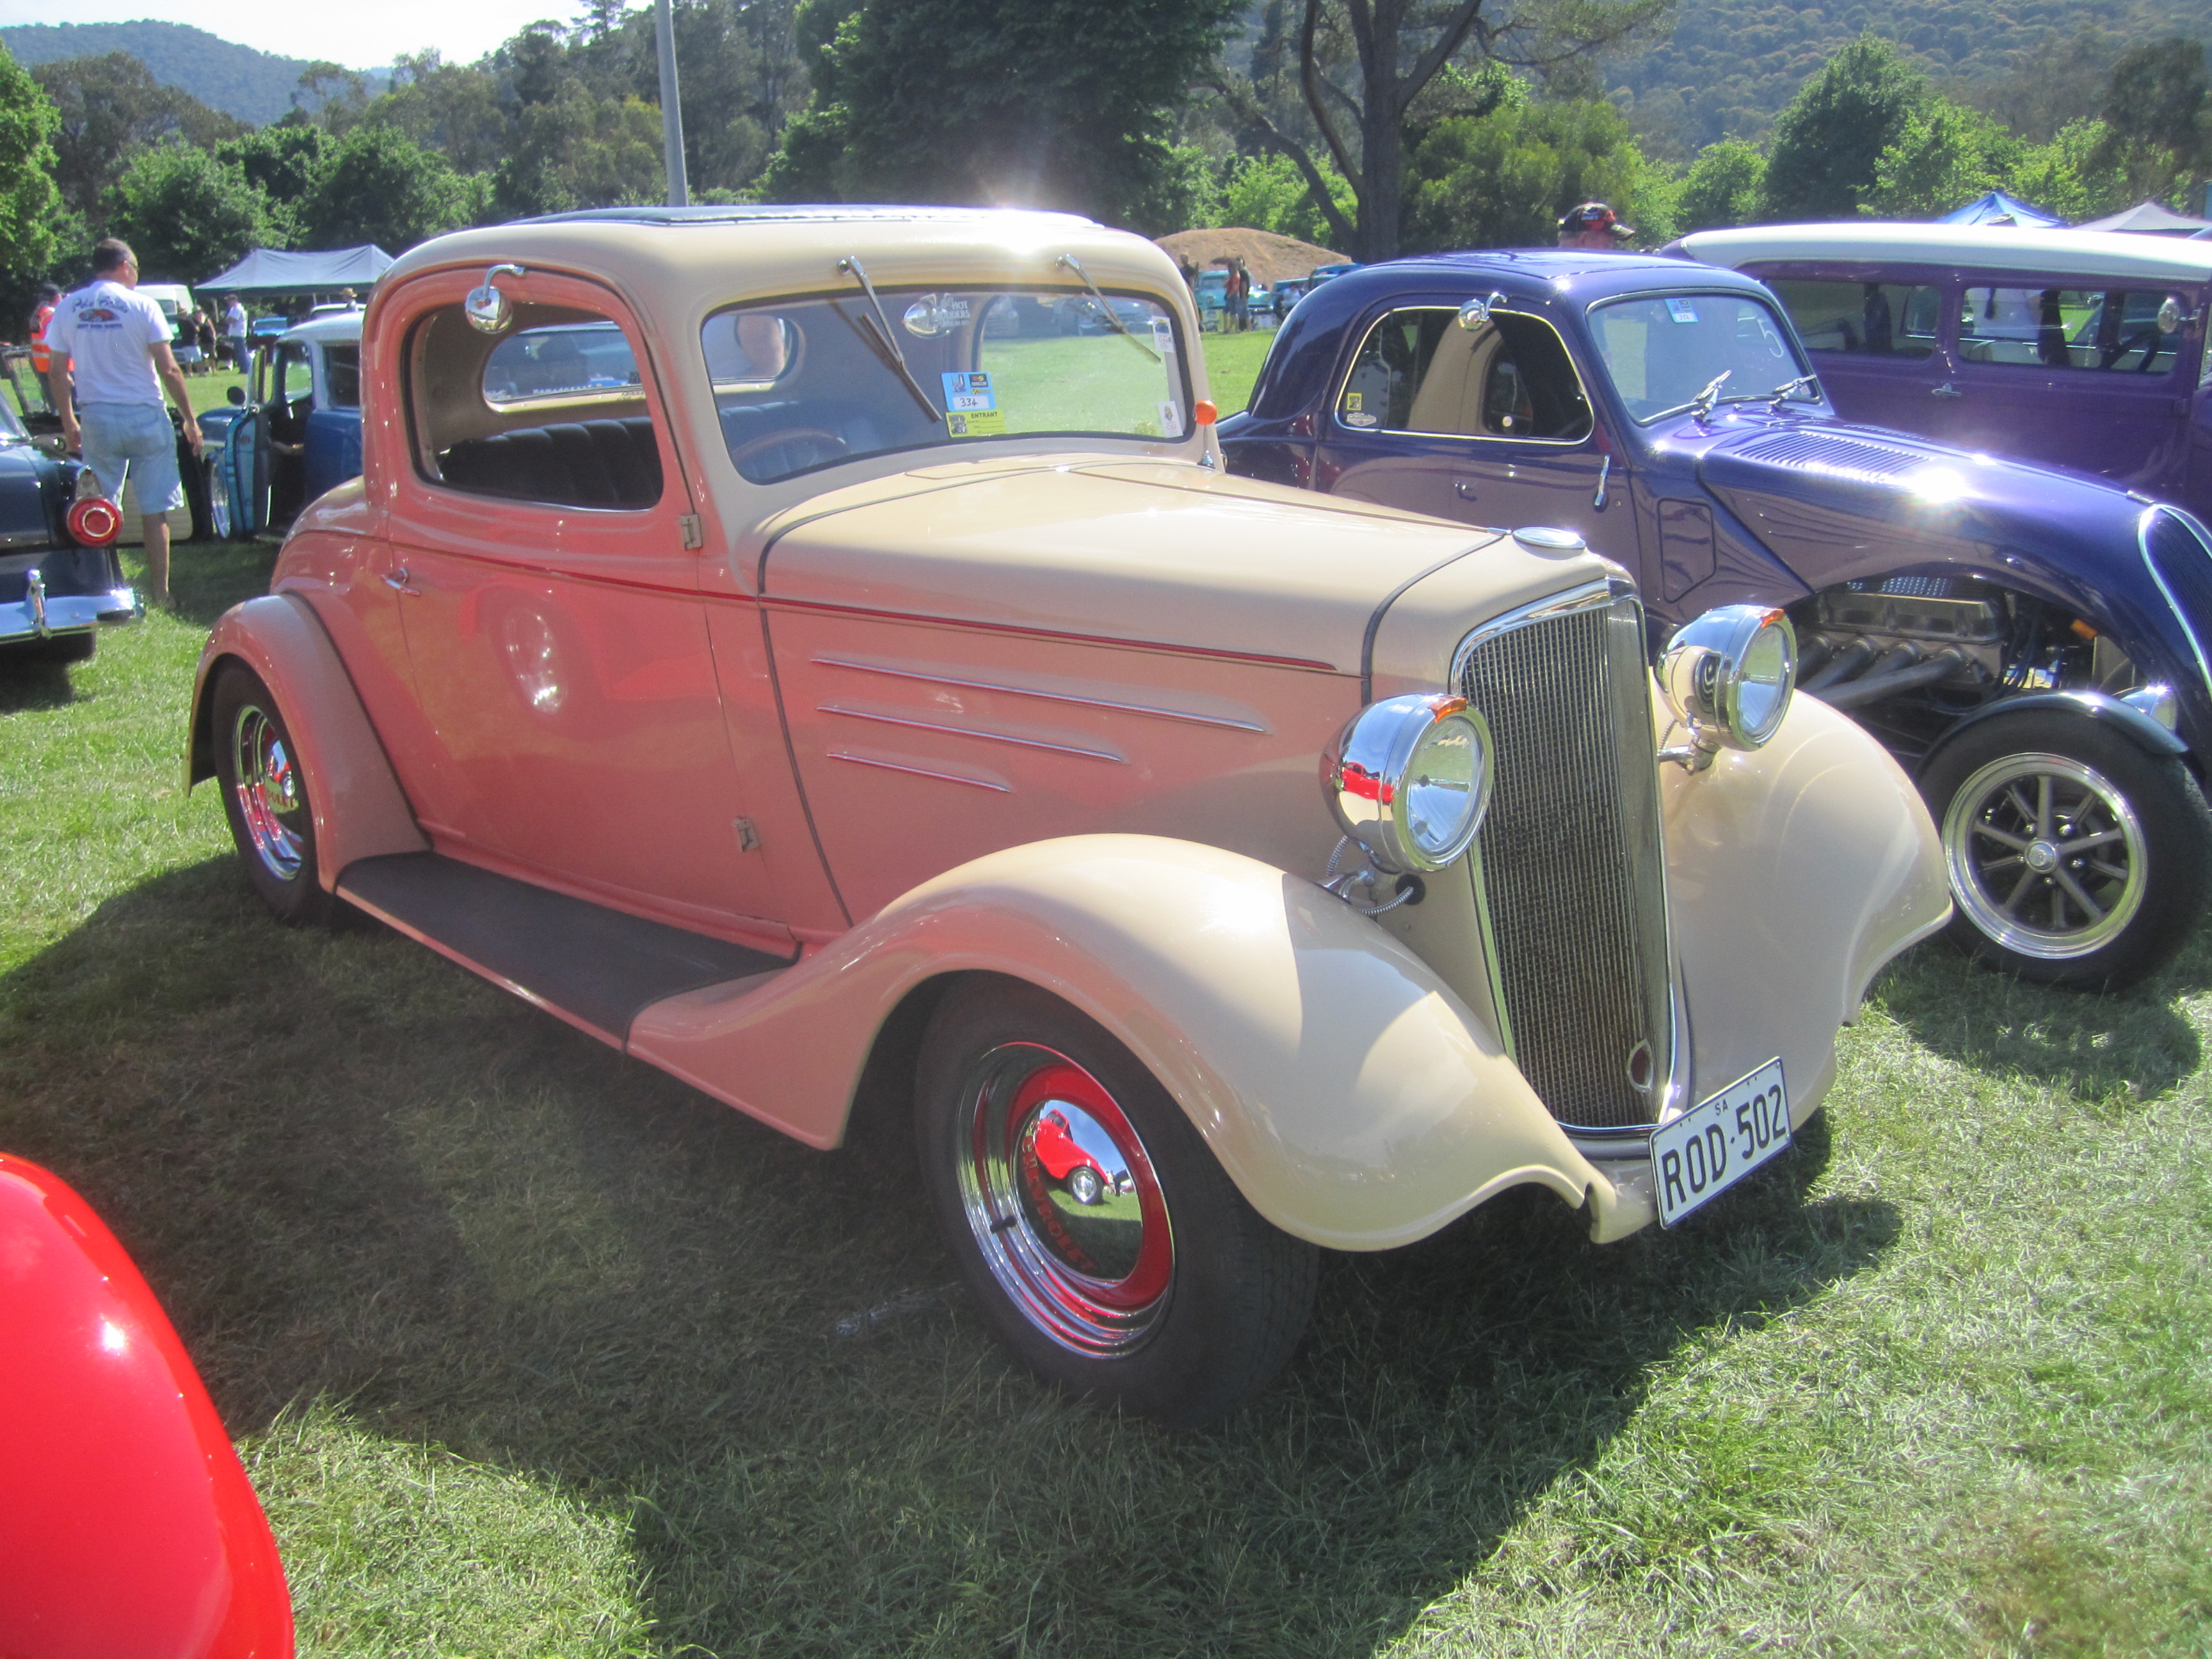 File:1934 Chevrolet Master 6 Coupe - Flickr - Sicnag jpg - Wikimedia